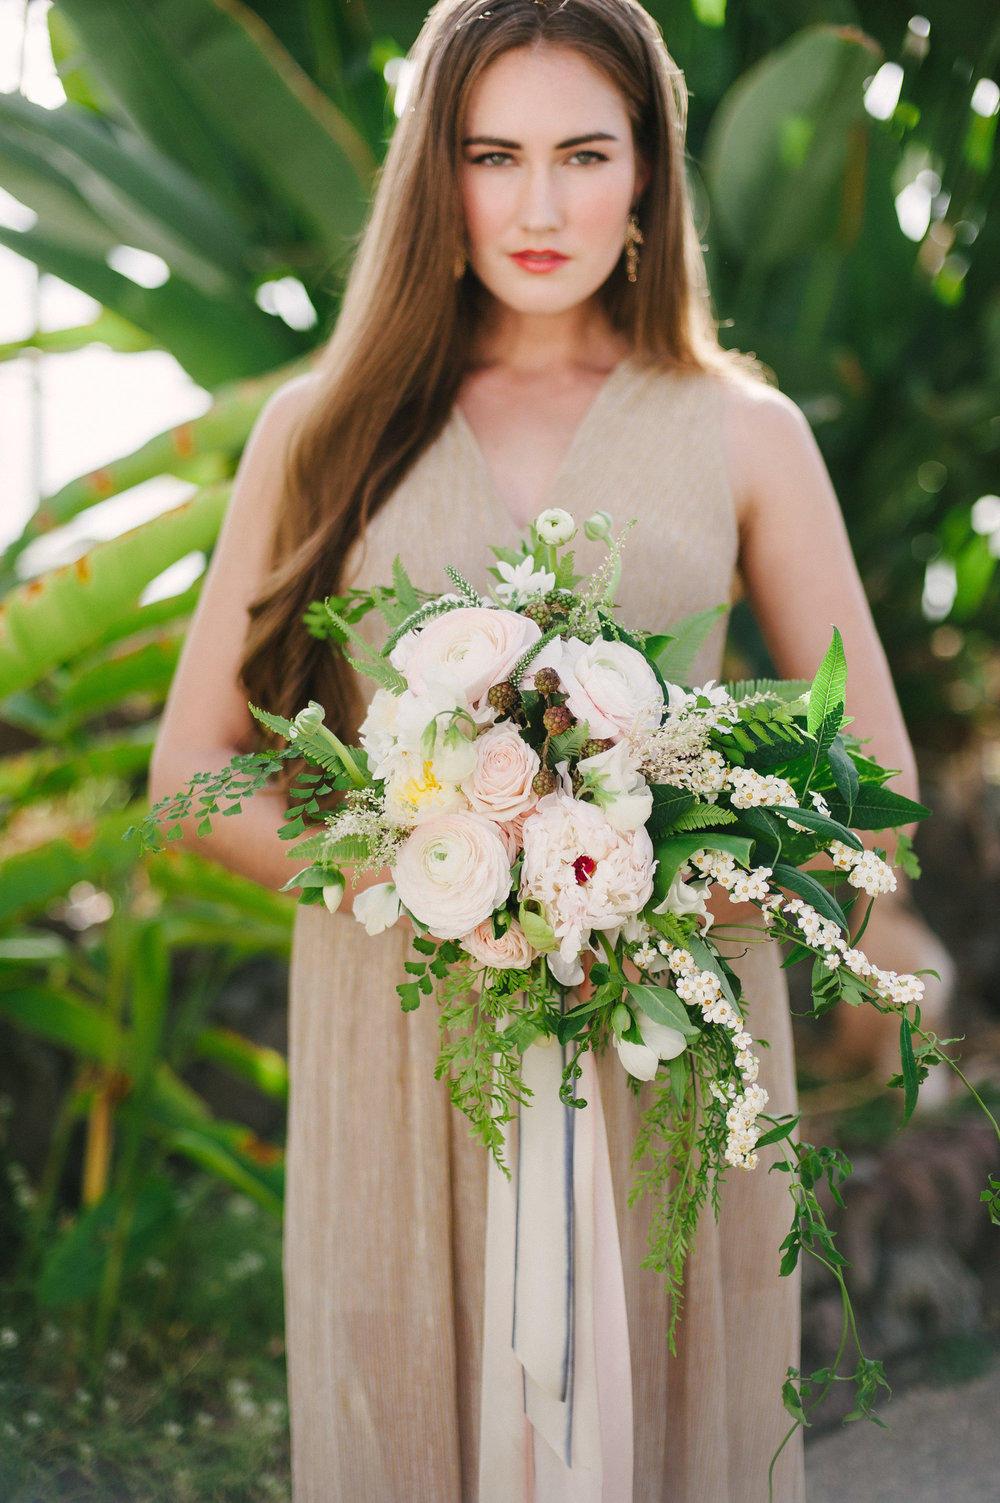 Unstructured Bouquet, Holly Heider Chapple Style, Florabundance Design Days